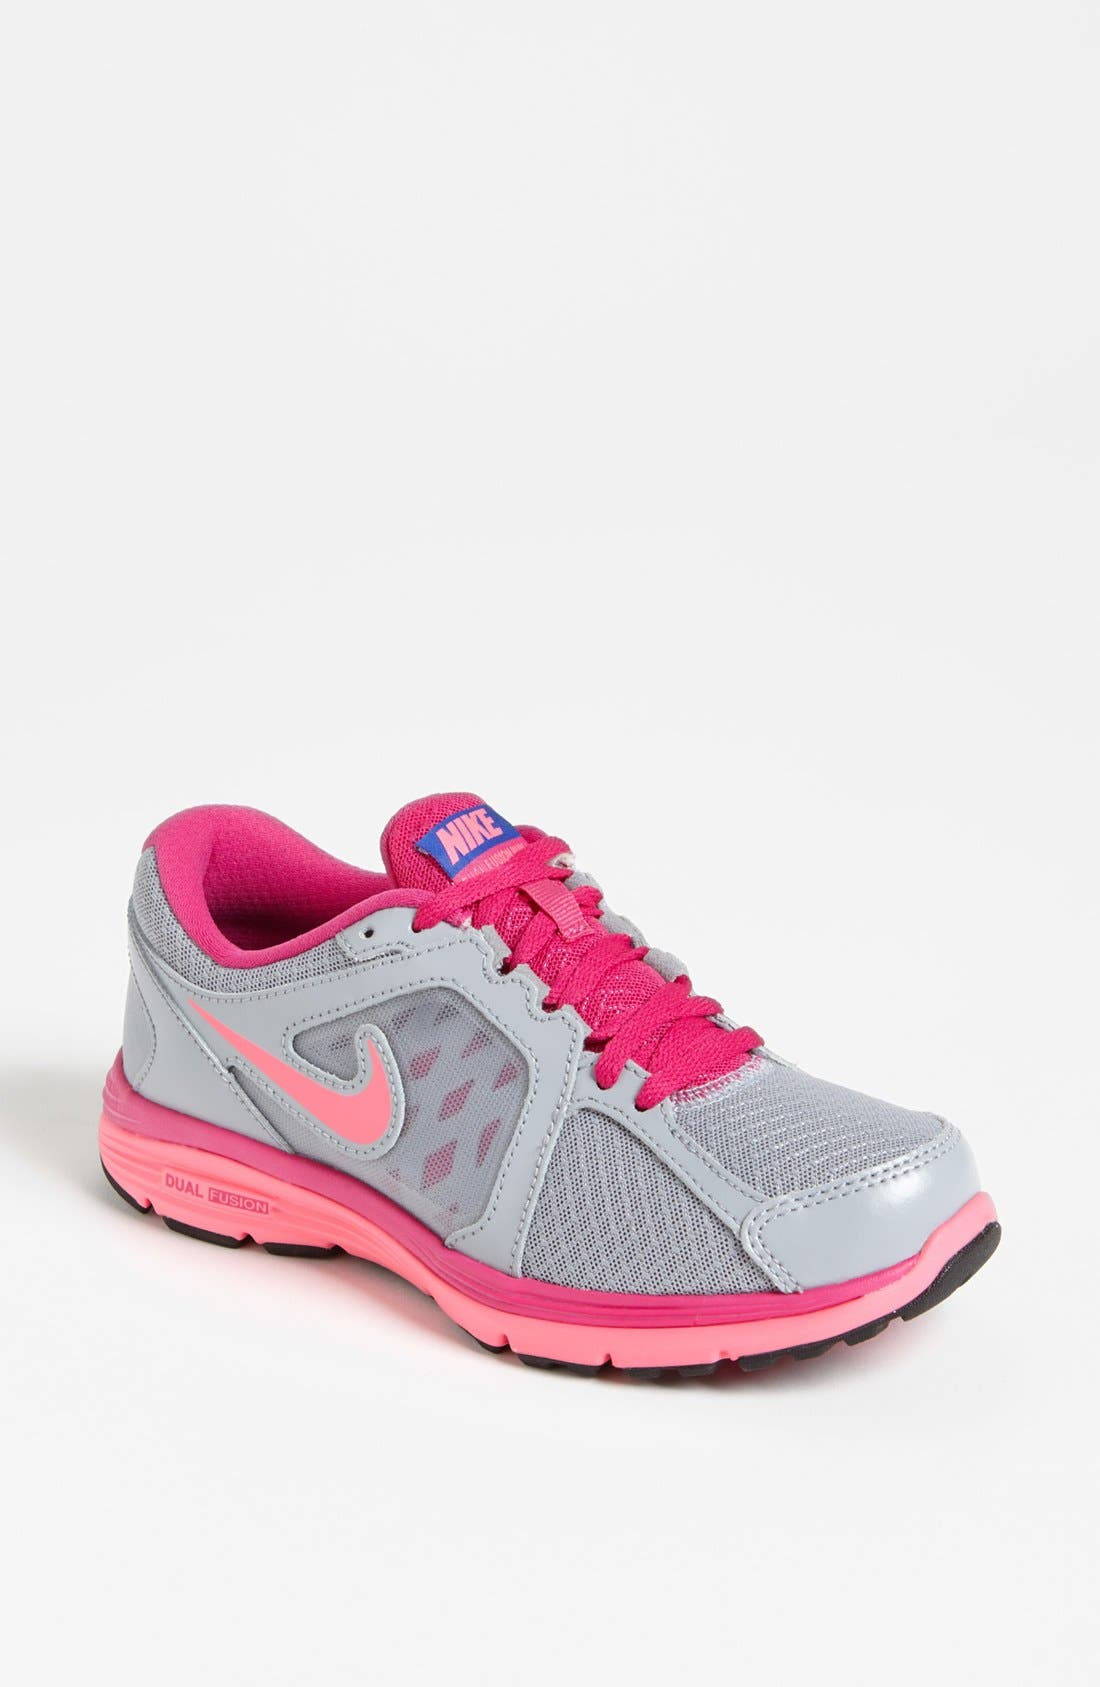 Alternate Image 1 Selected - Nike 'Dual Fusion 3' Running Shoe (Women)